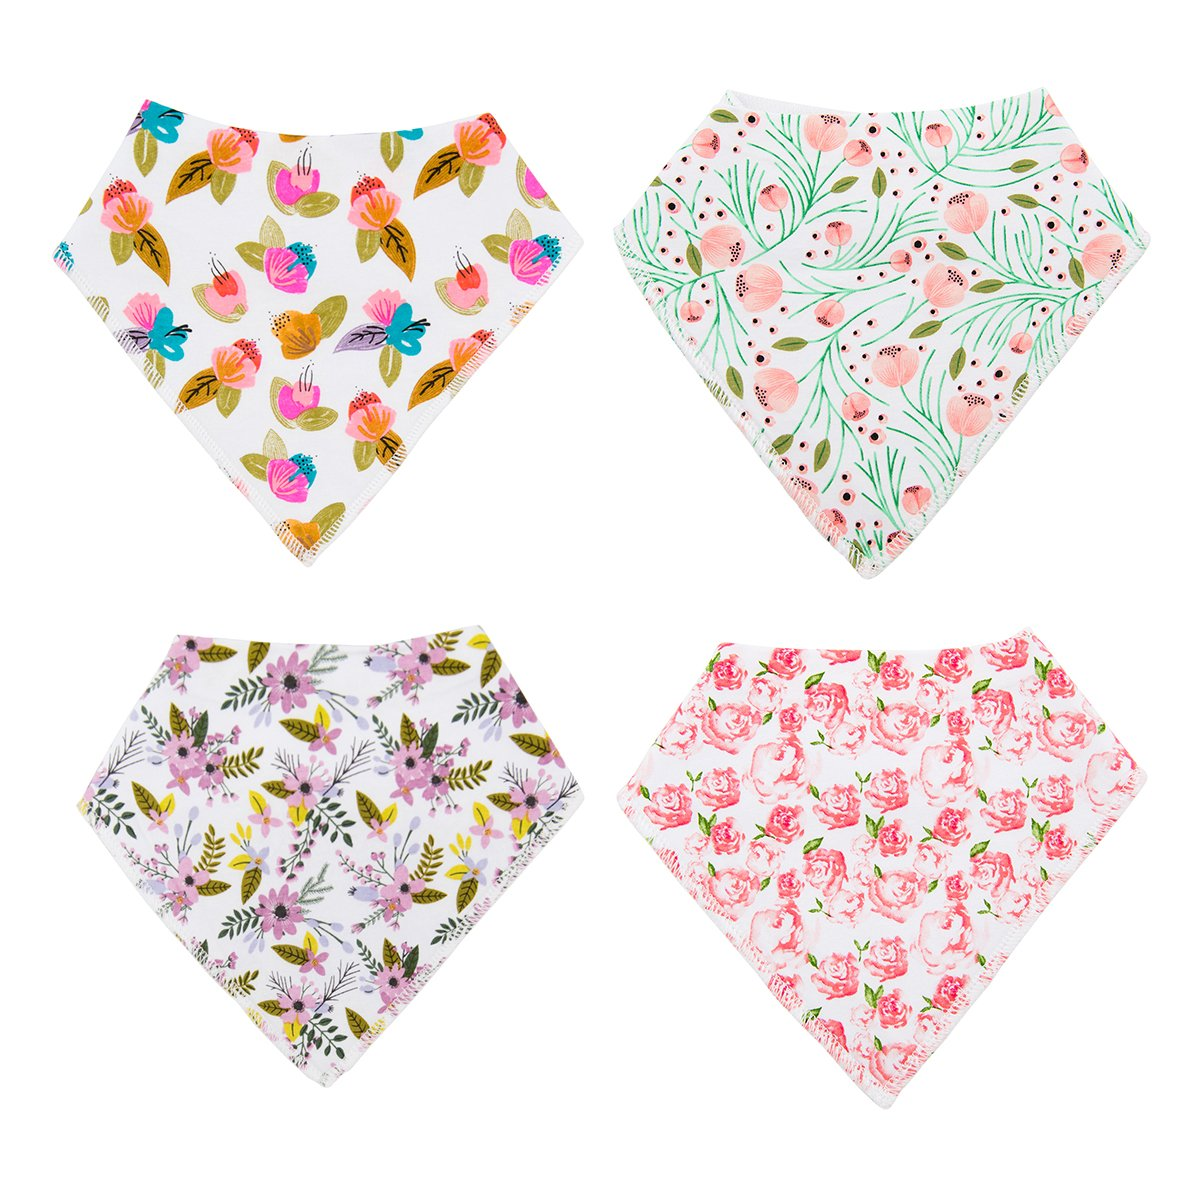 10 PACK ALVABABY Bandana Drool Bibs for Girls 100/% Cotton Resuable Adjustable Absorbent Baby Gift Sets 10SD02